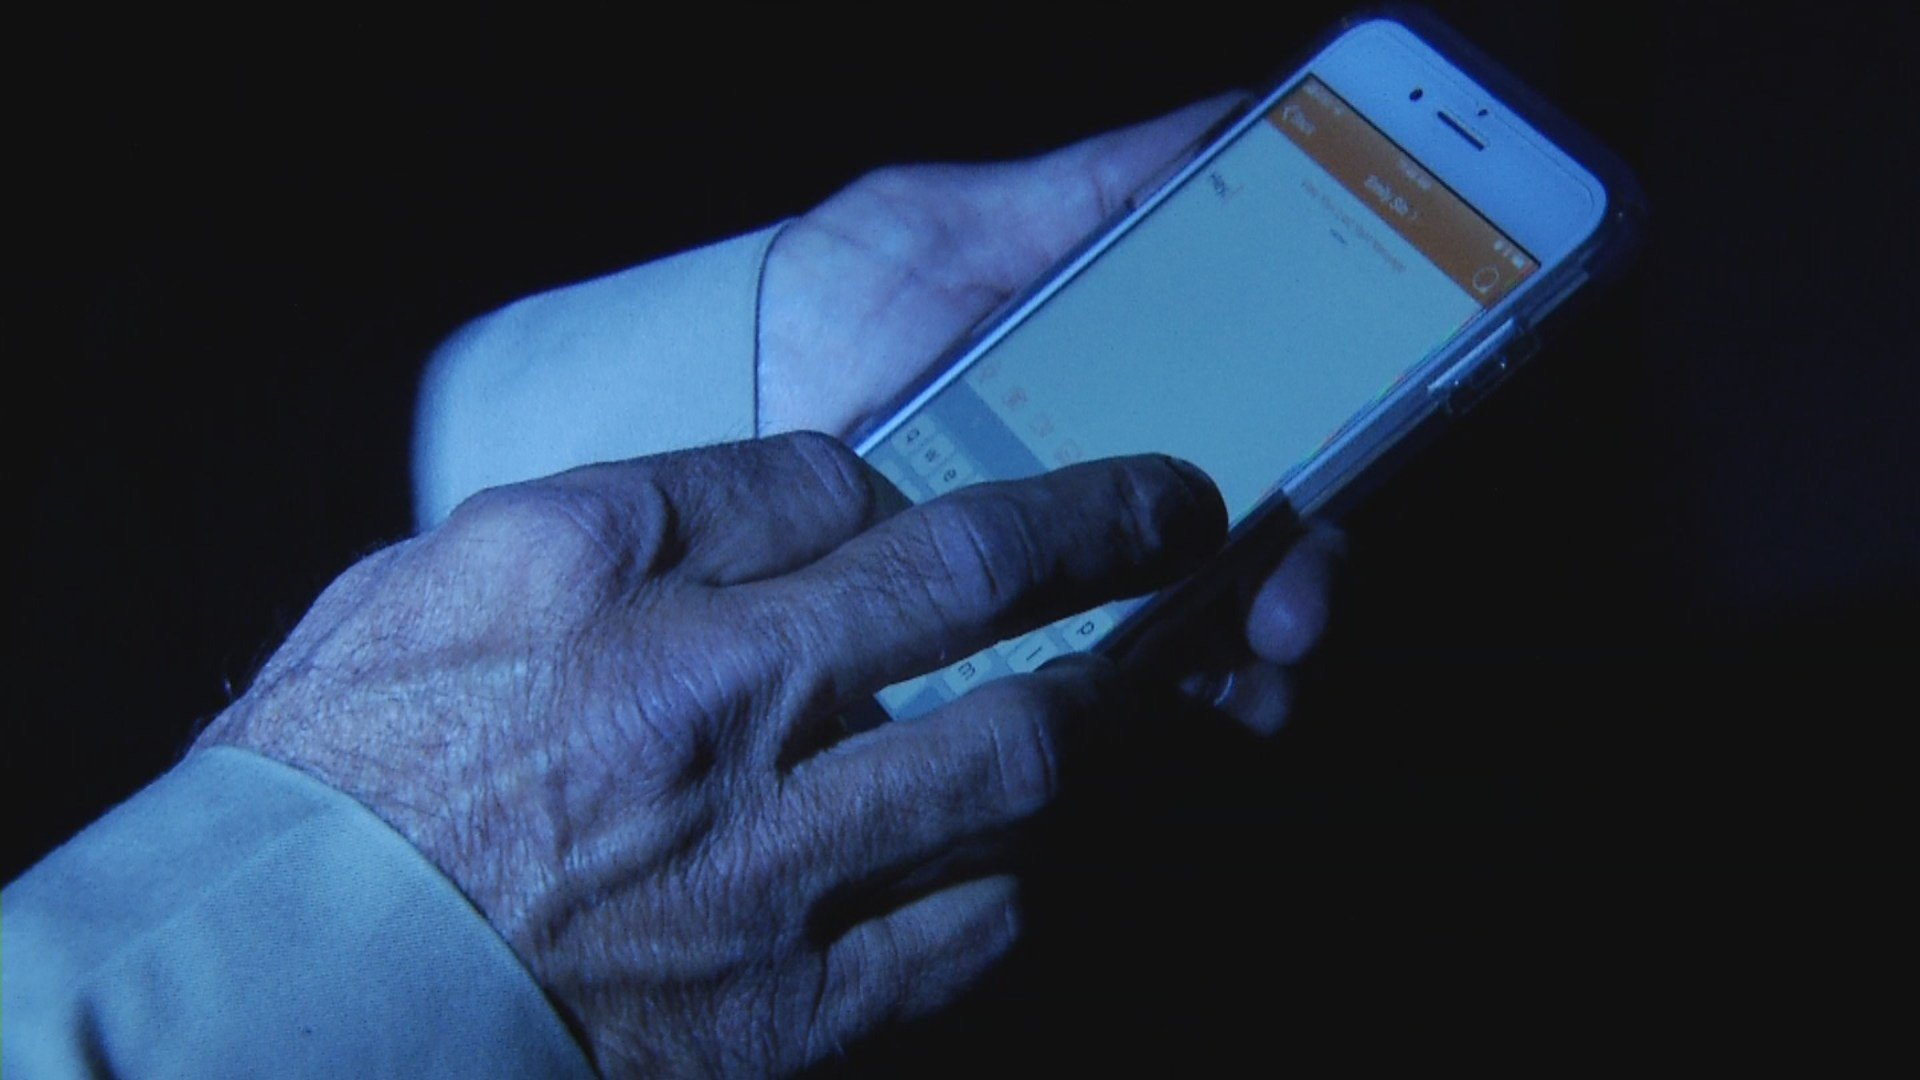 The Confide messaging app that has been the source of so much controversy may have another problem -- security. (KCTV5)